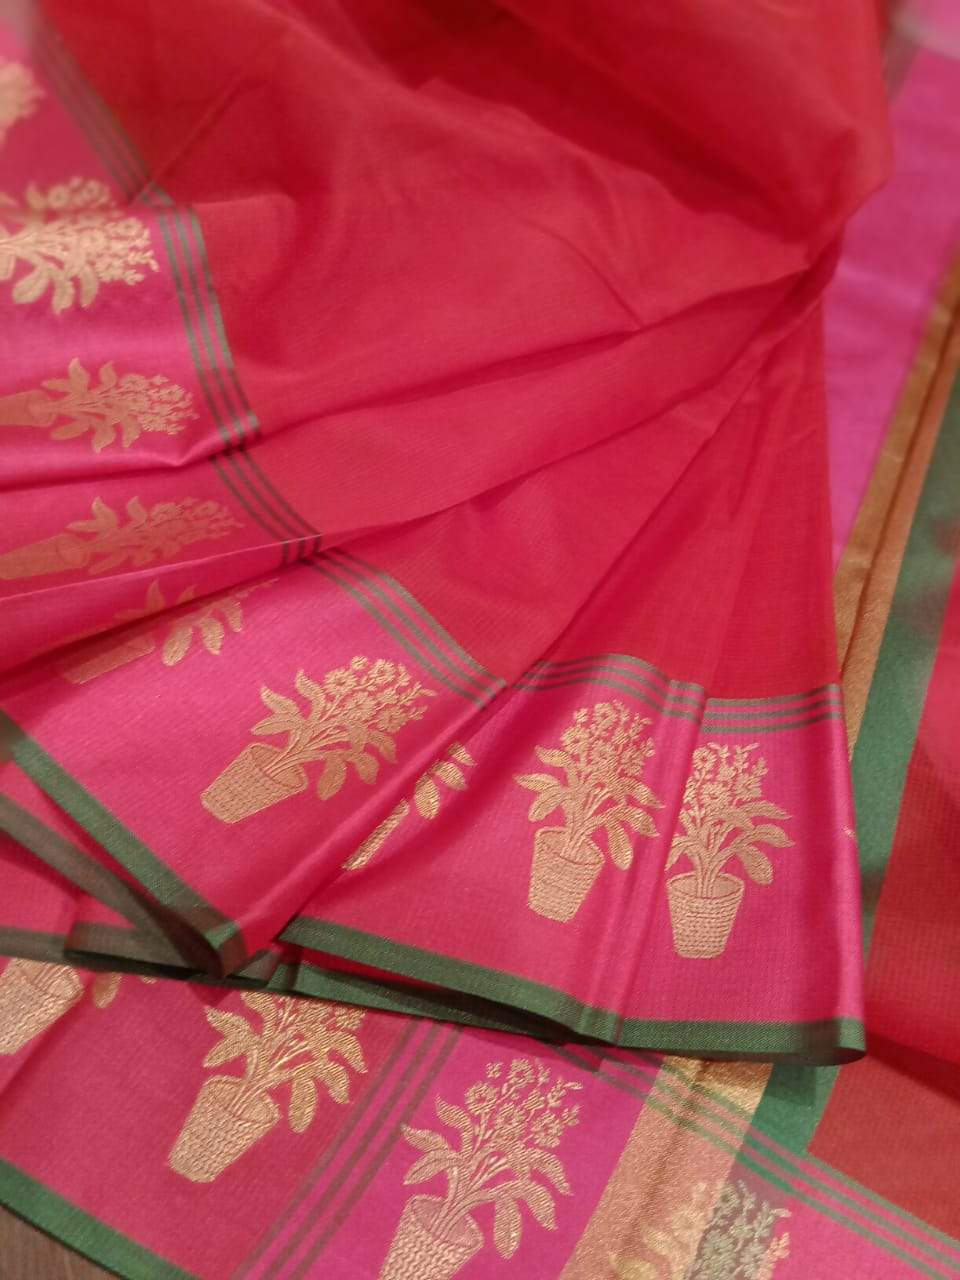 Red Chanderi saree with pink border with golden motifs on it